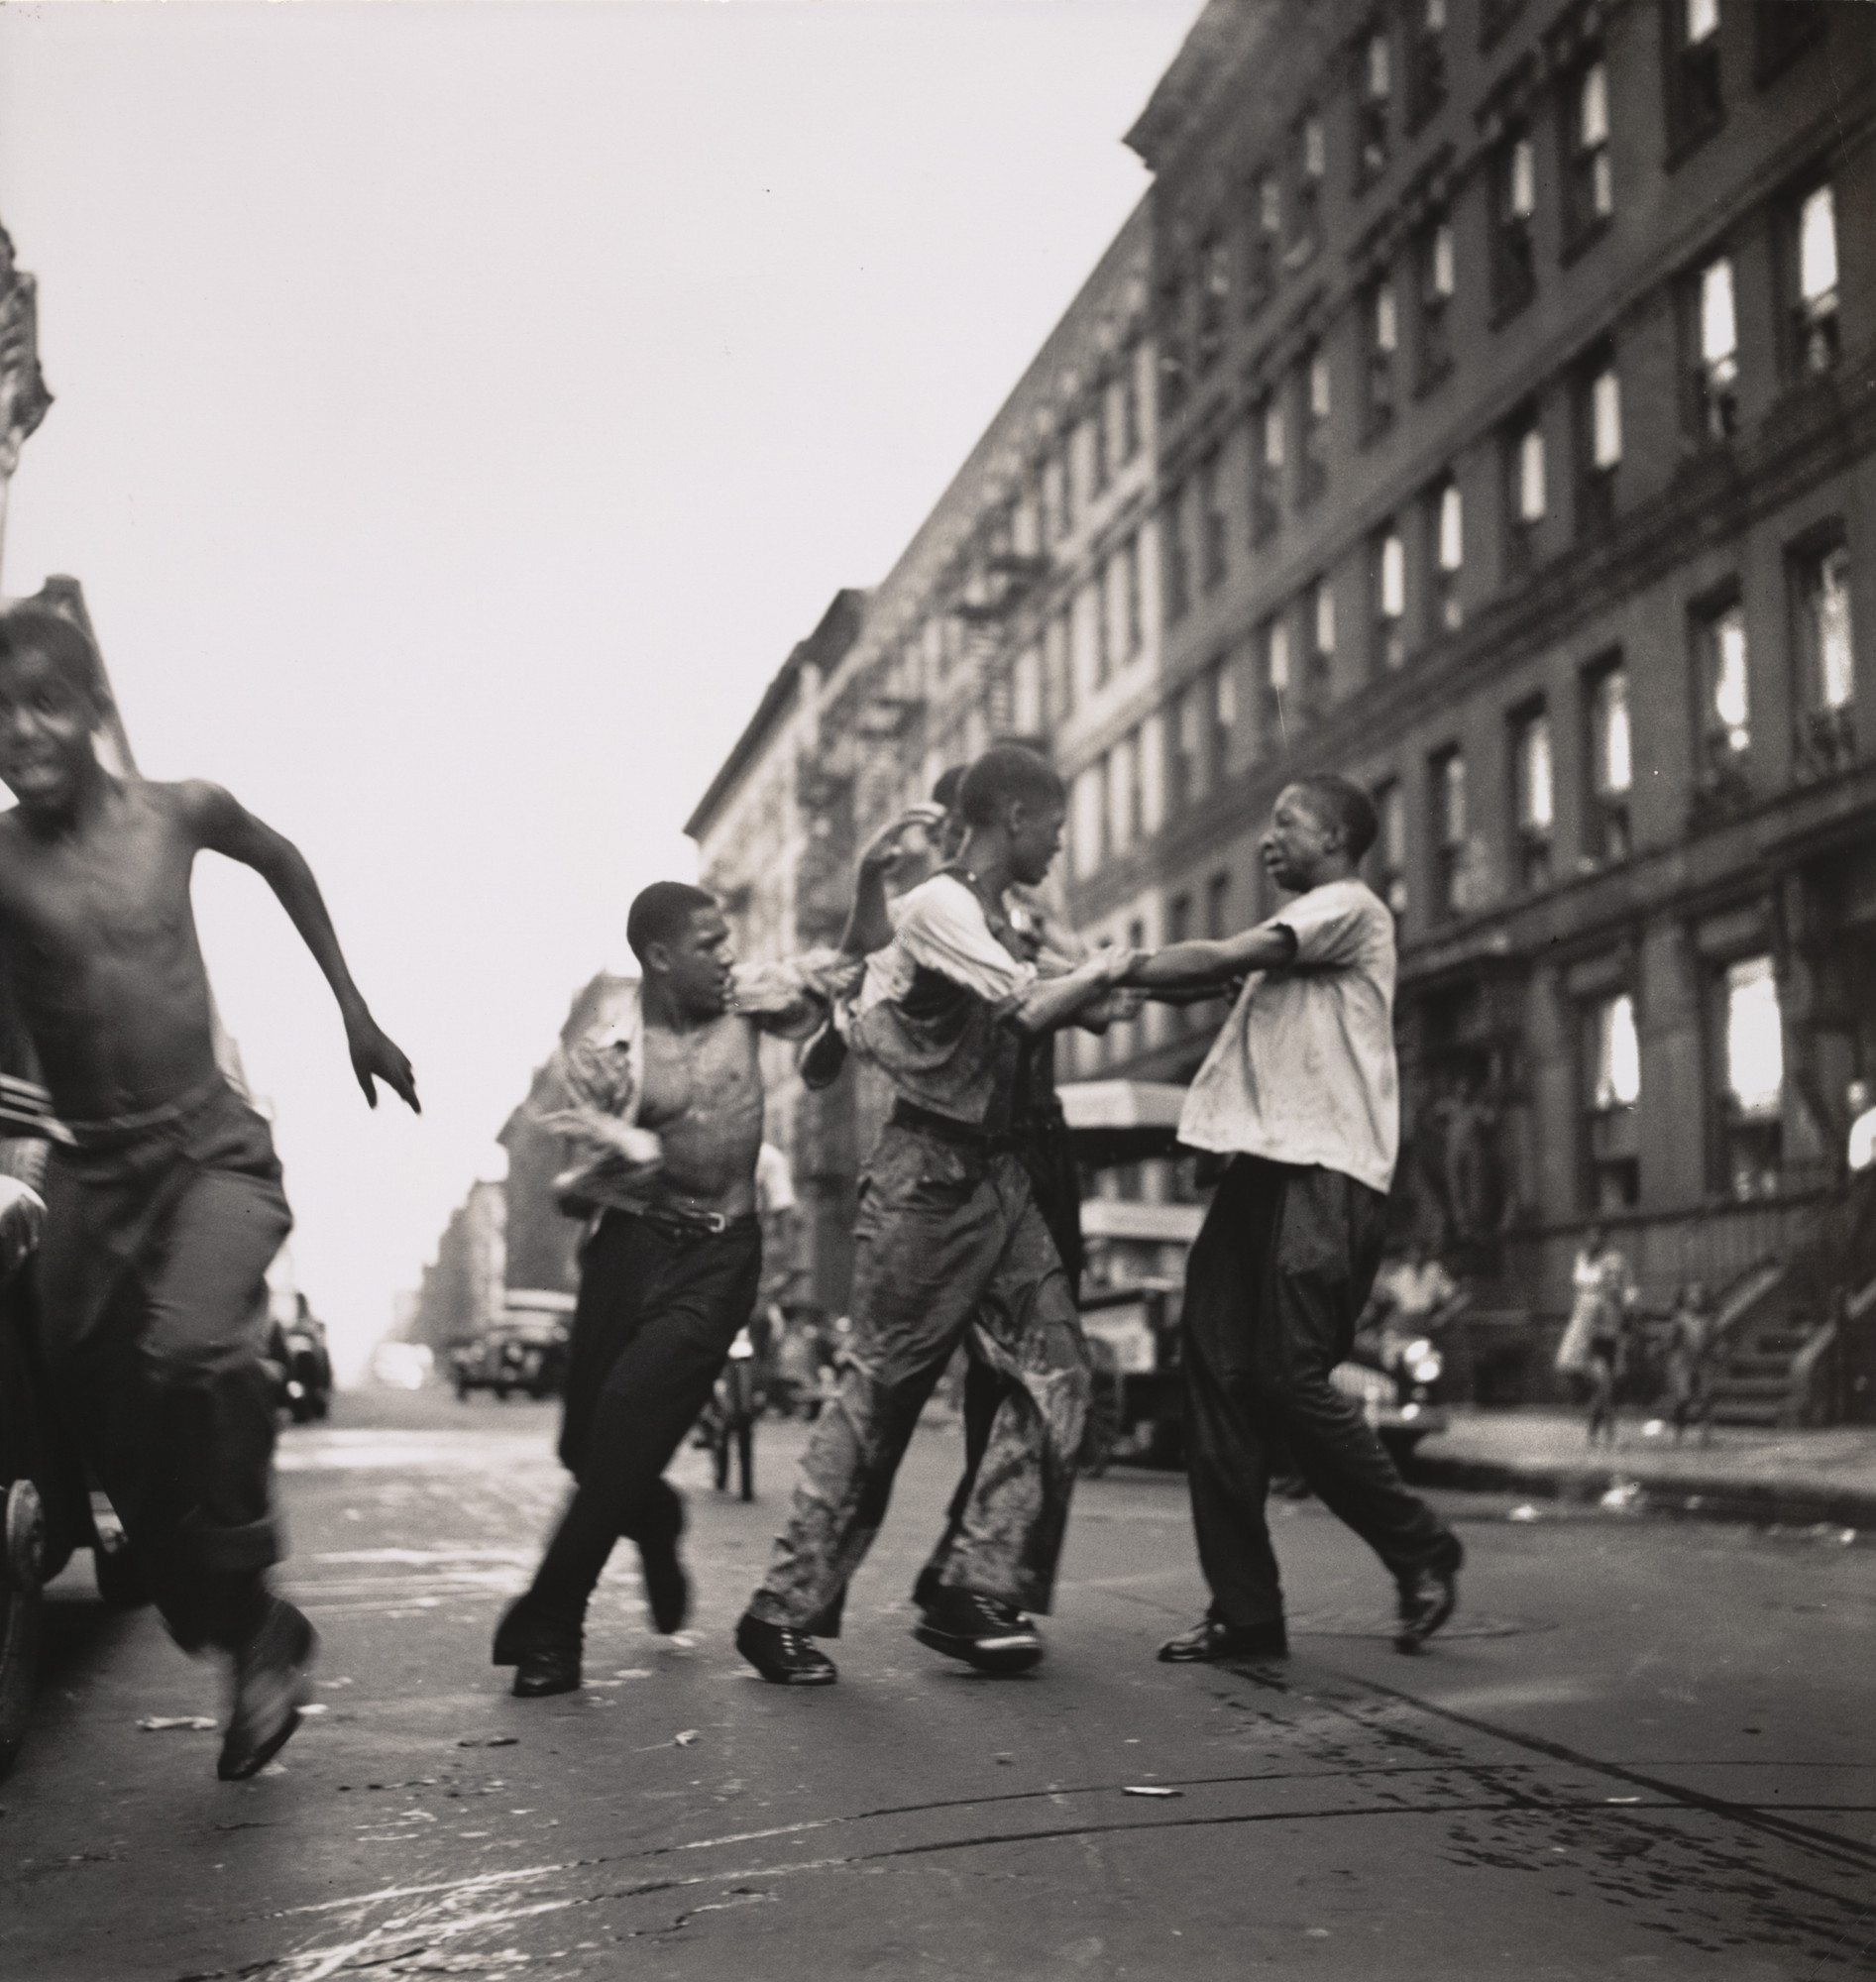 Gordon Parks. Harlem Gang Wars. 1948